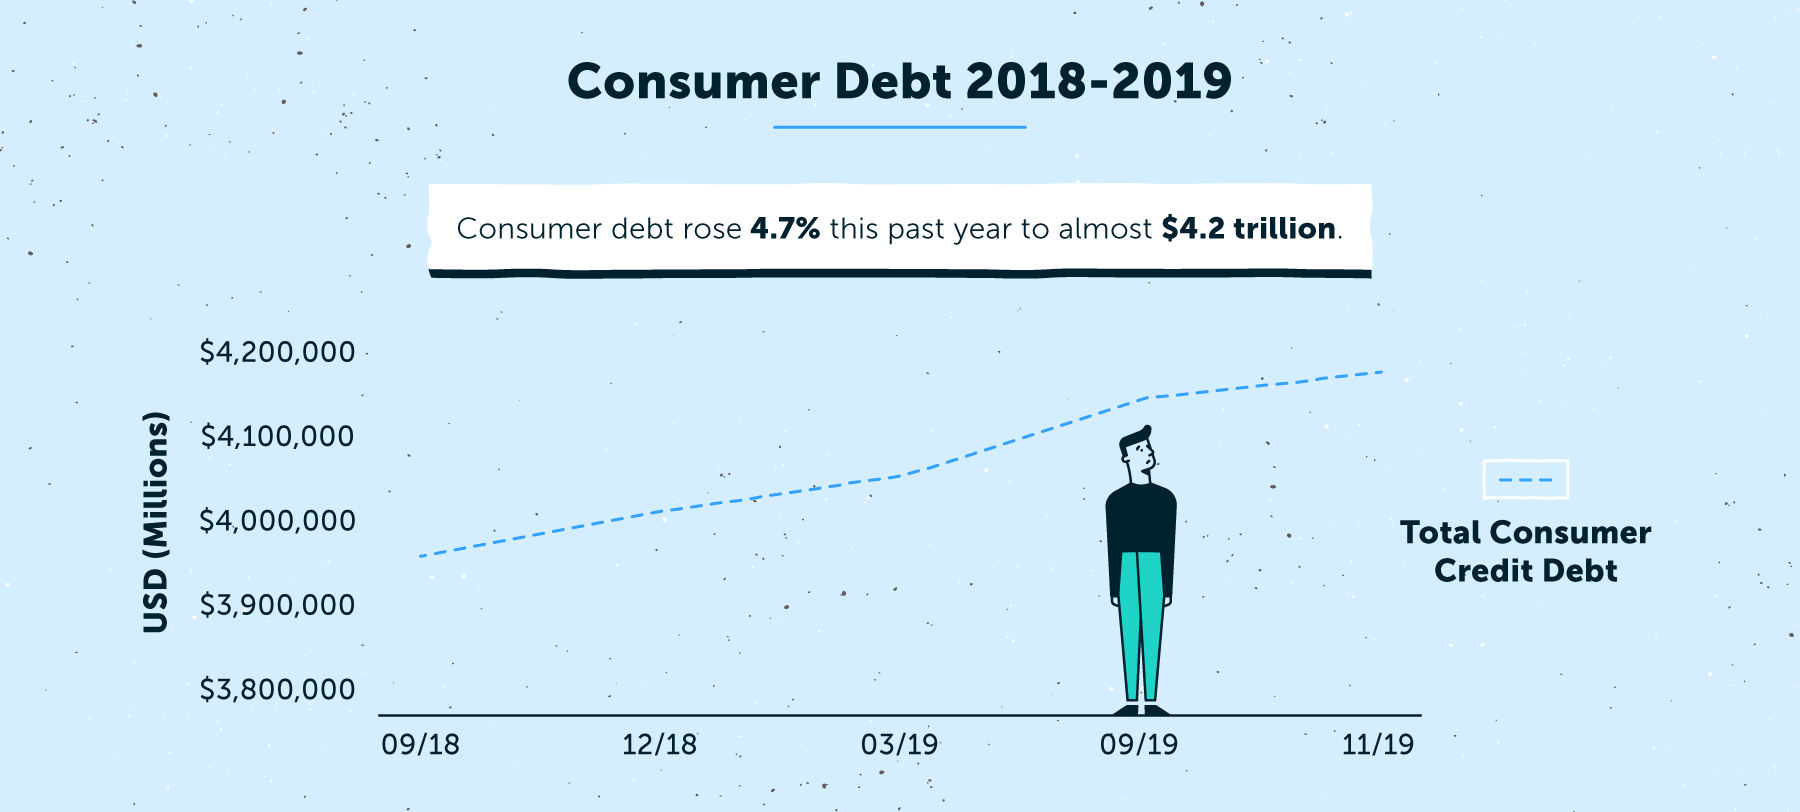 consumer debt stats from 2018 to 2019